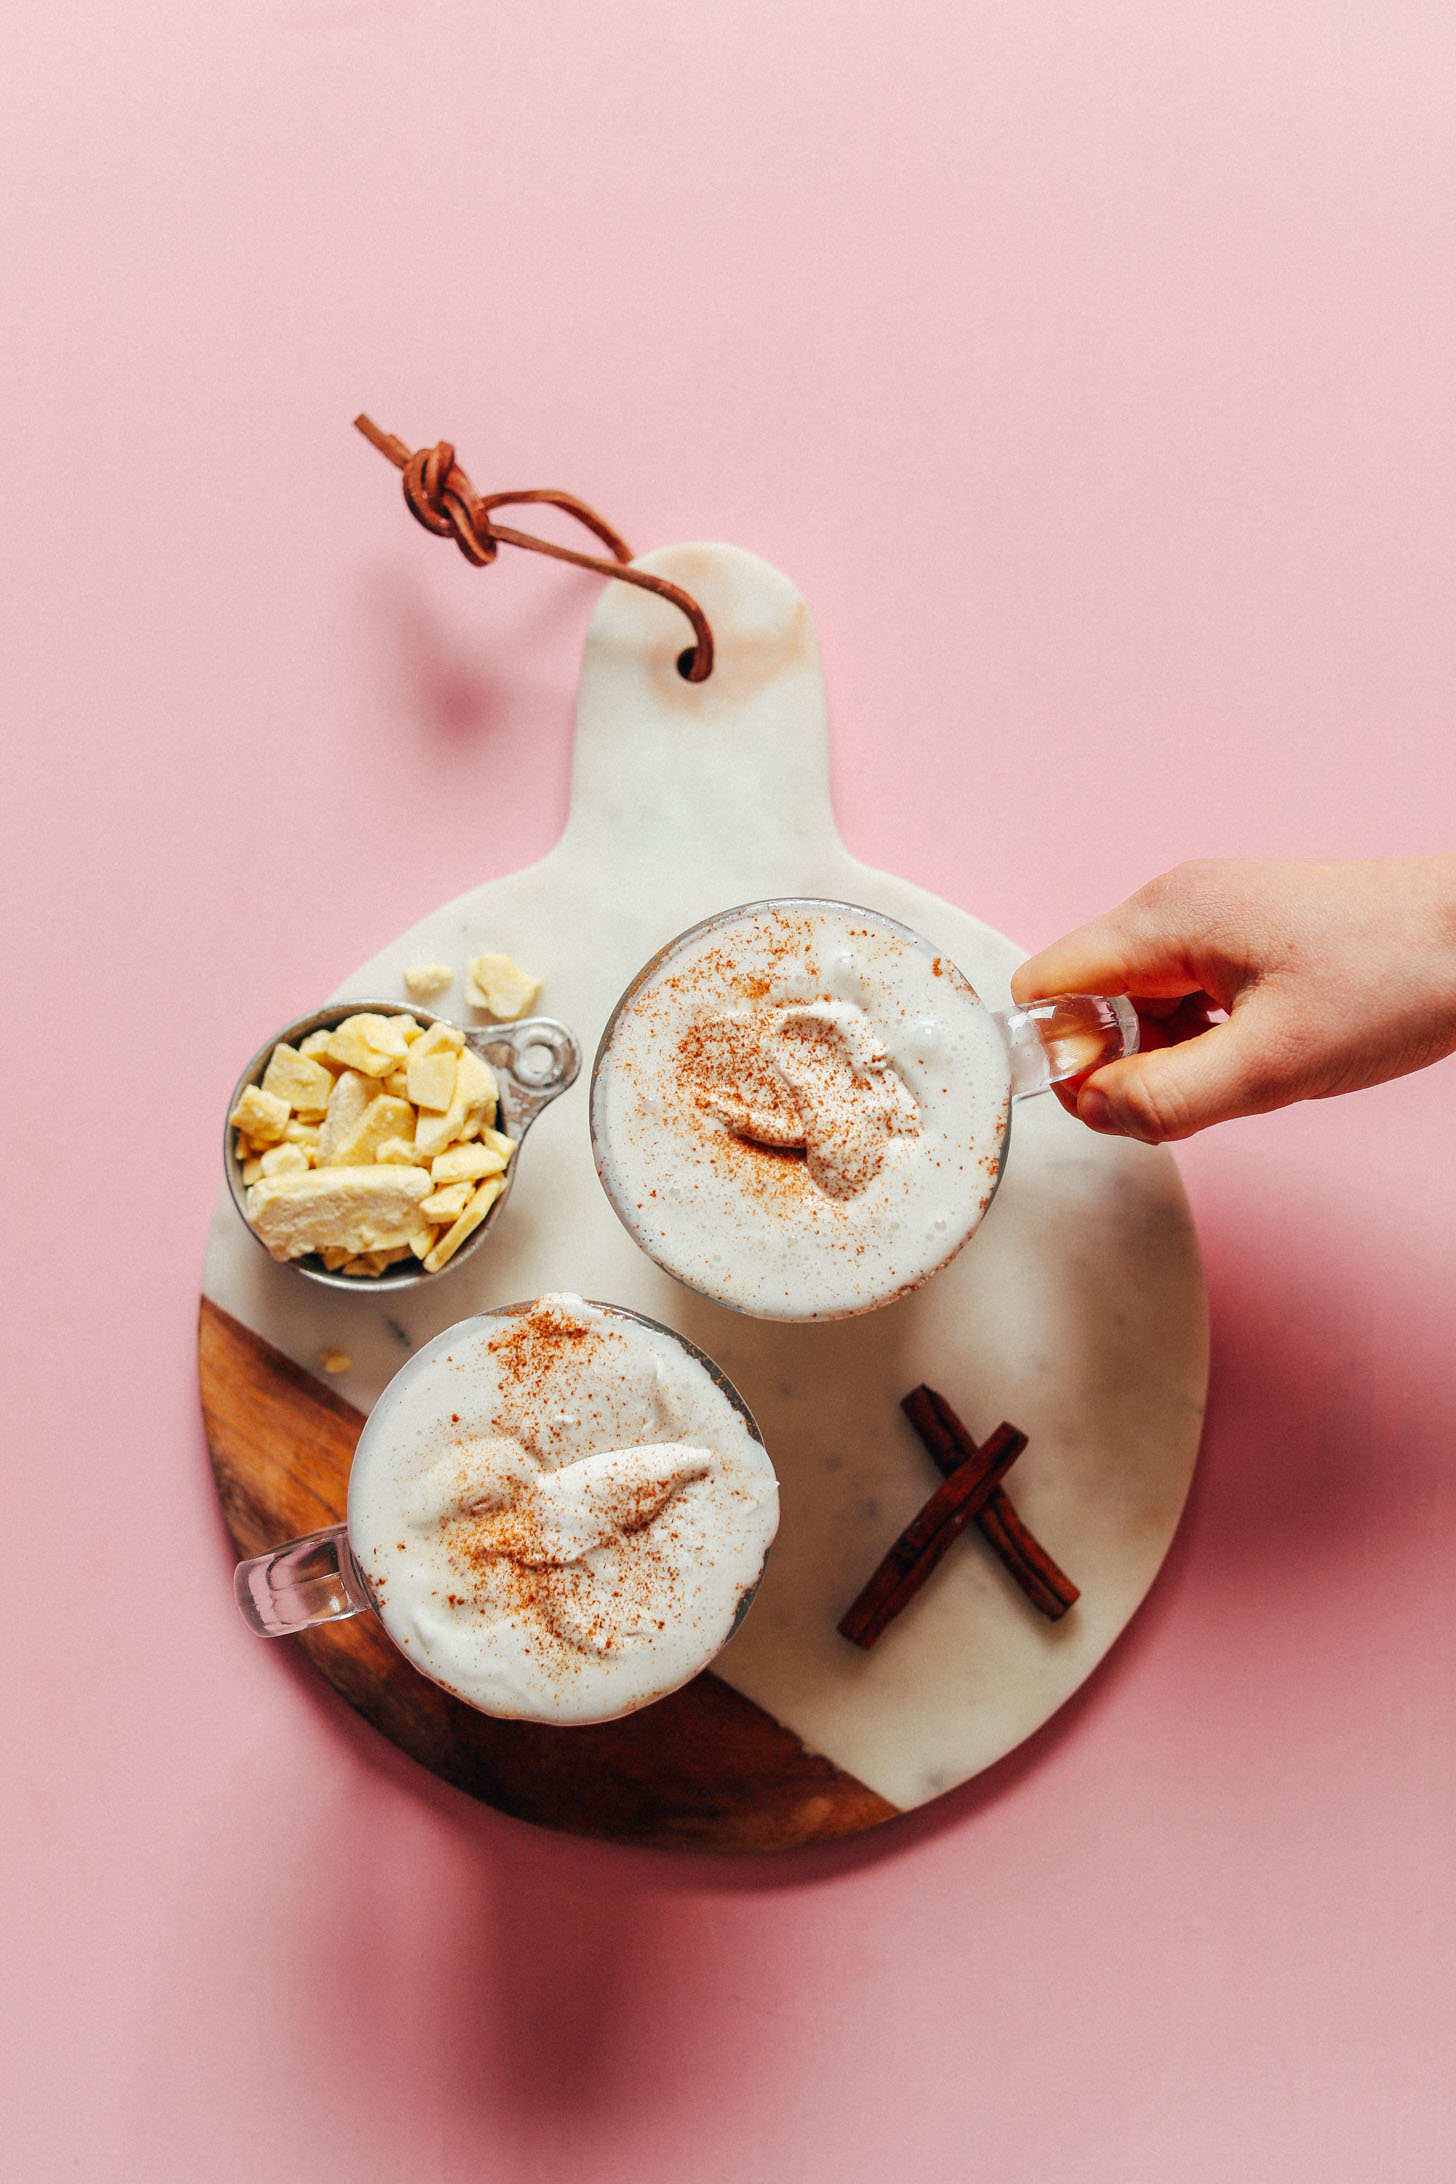 Grabbing a mug of our delicious Vegan White Hot Chocolate for dessert